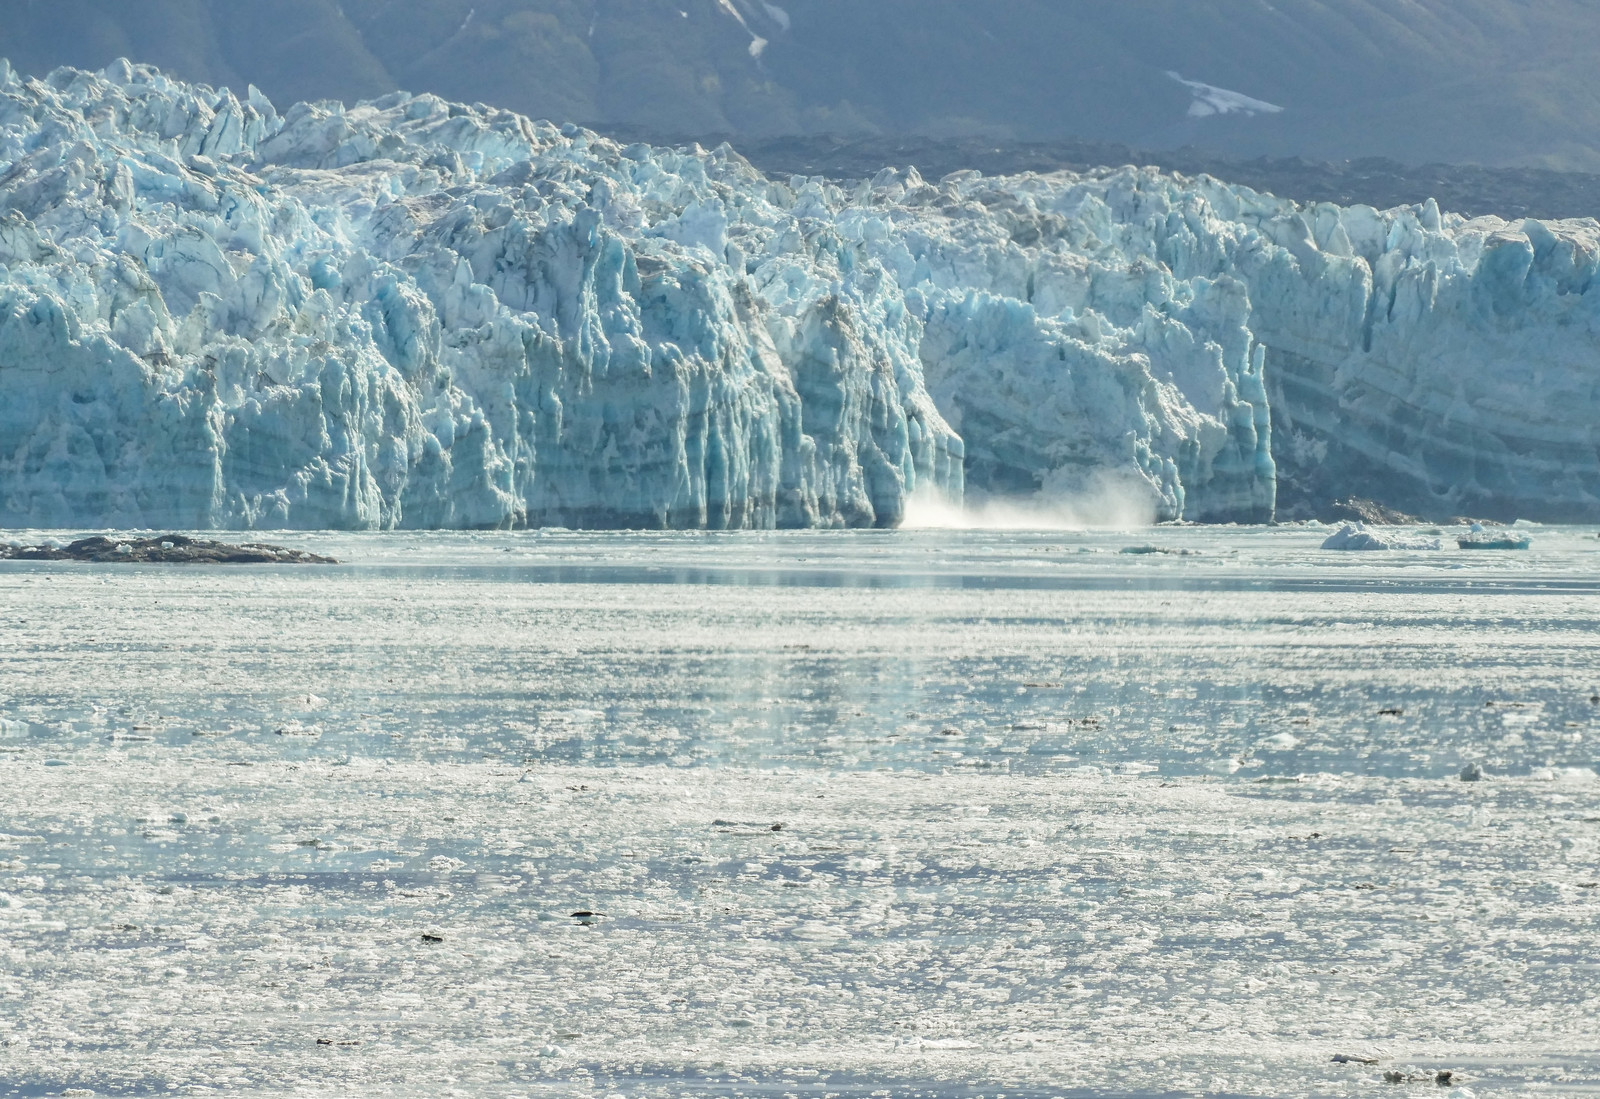 Mist rises from the front of a glacier after a calving.